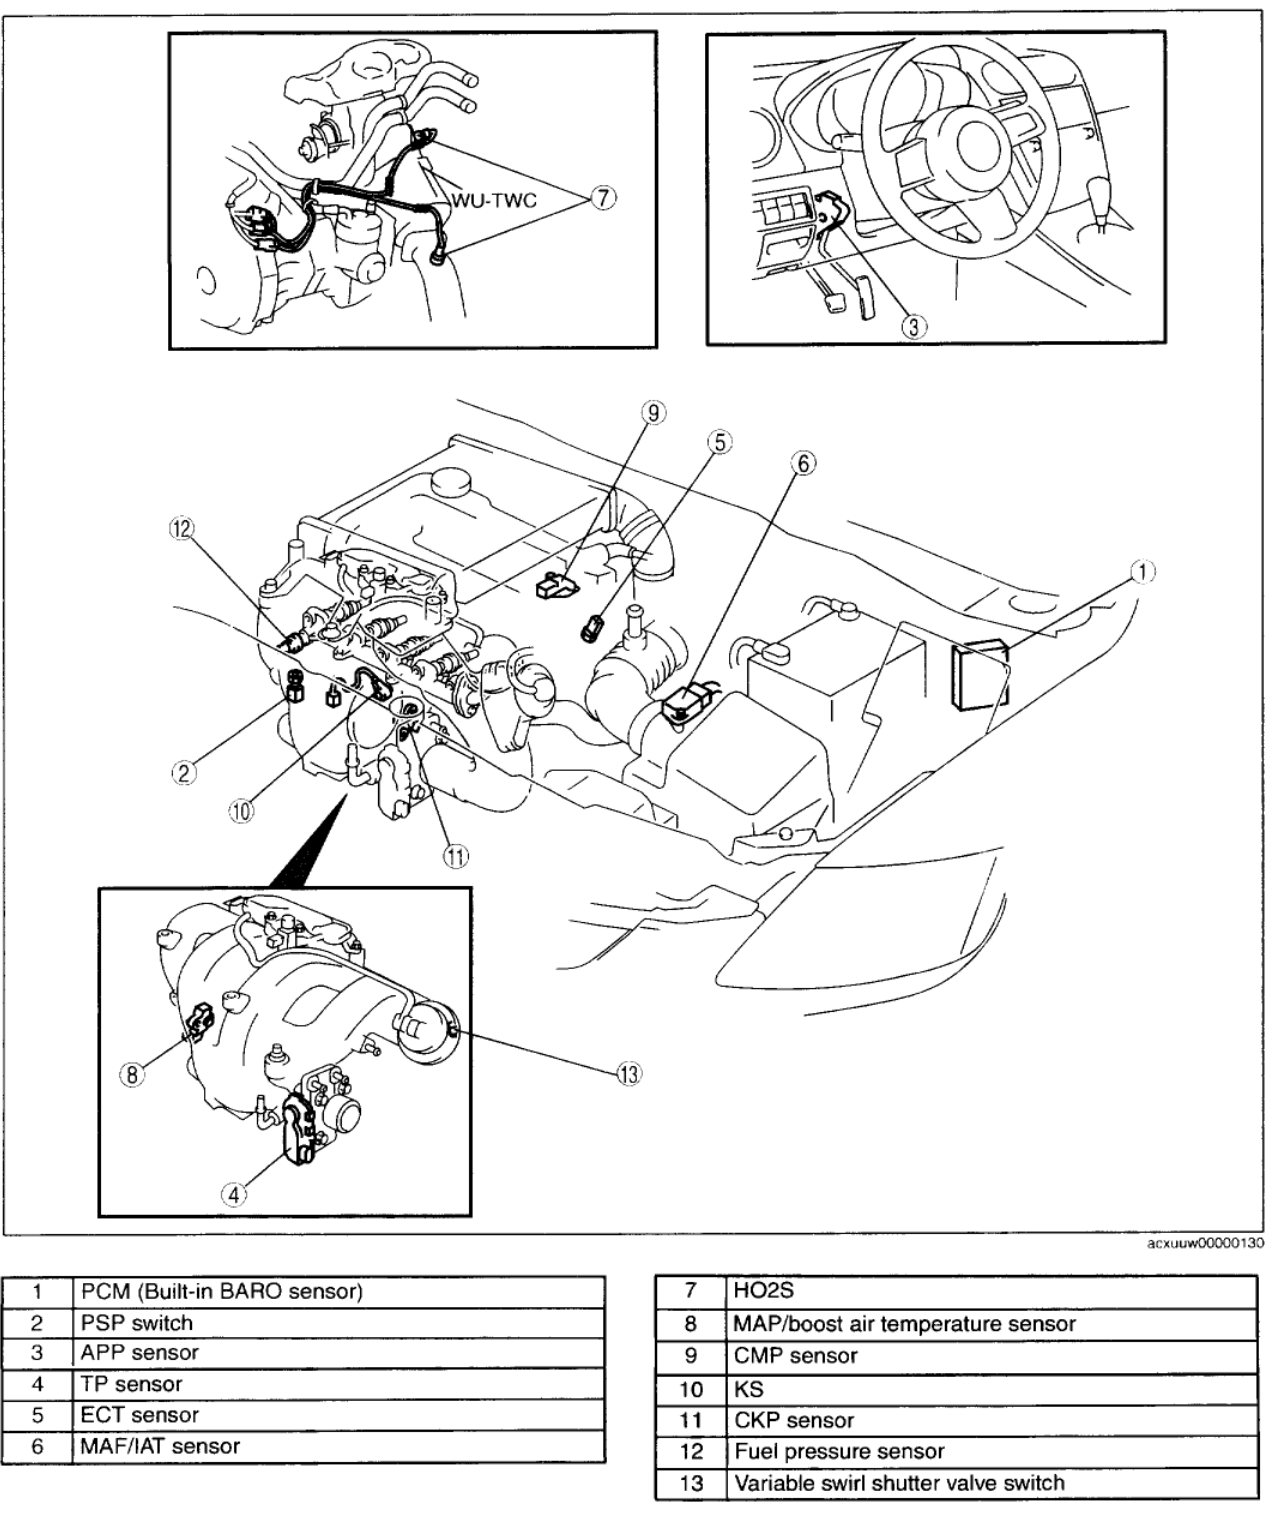 Mazda Cx 7 Engine Diagram Layout Wiring Diagrams 2008 3 Where Is The Ect Sensor Located On A 2007 Rh Justanswer Com